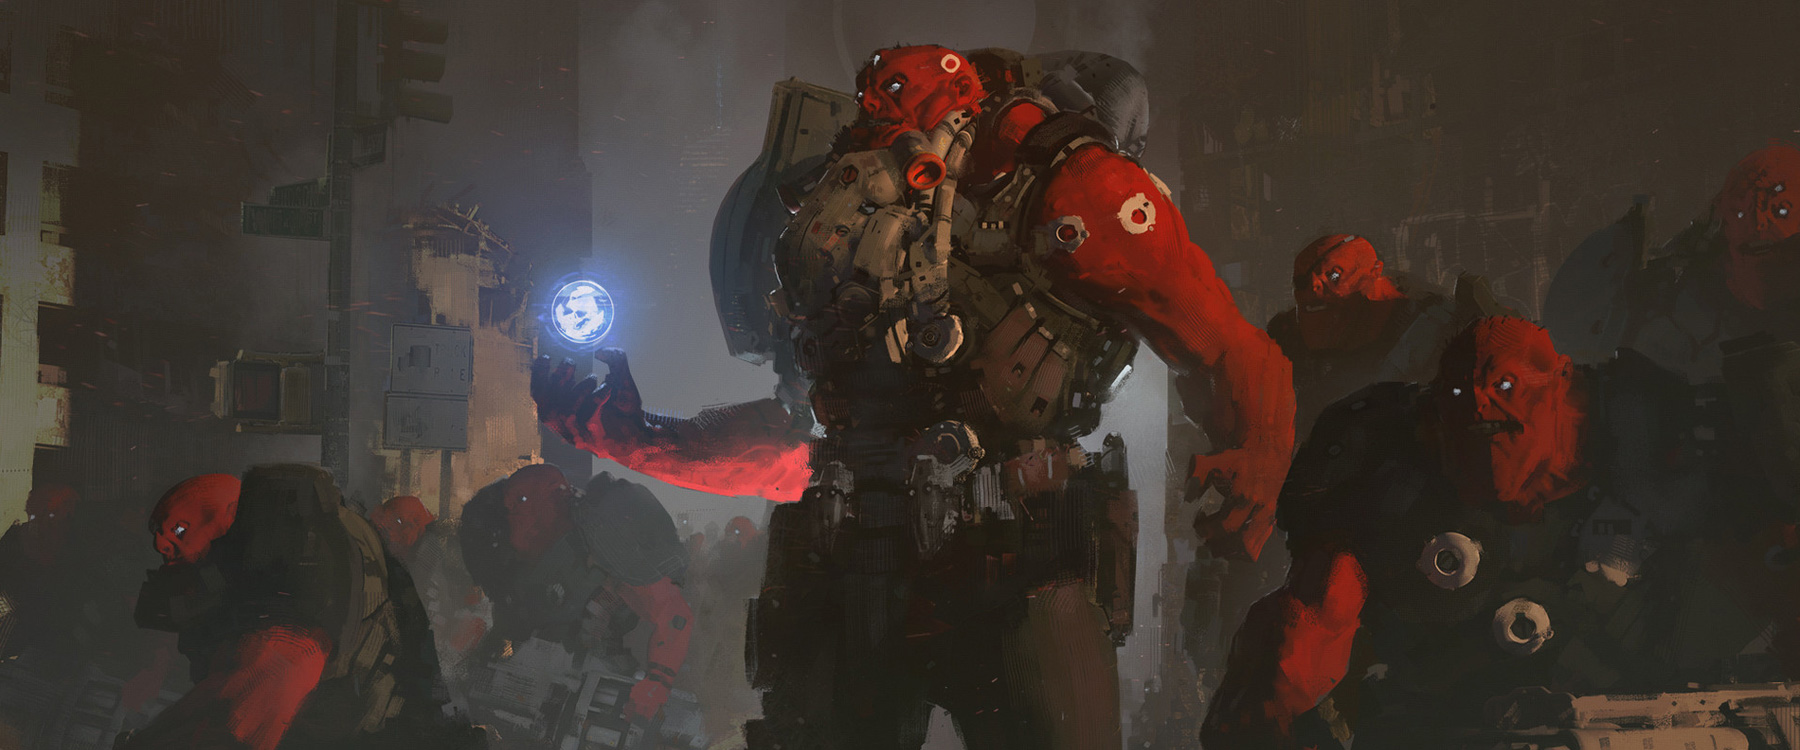 Concept Art World Showcasing Concept Artists News And